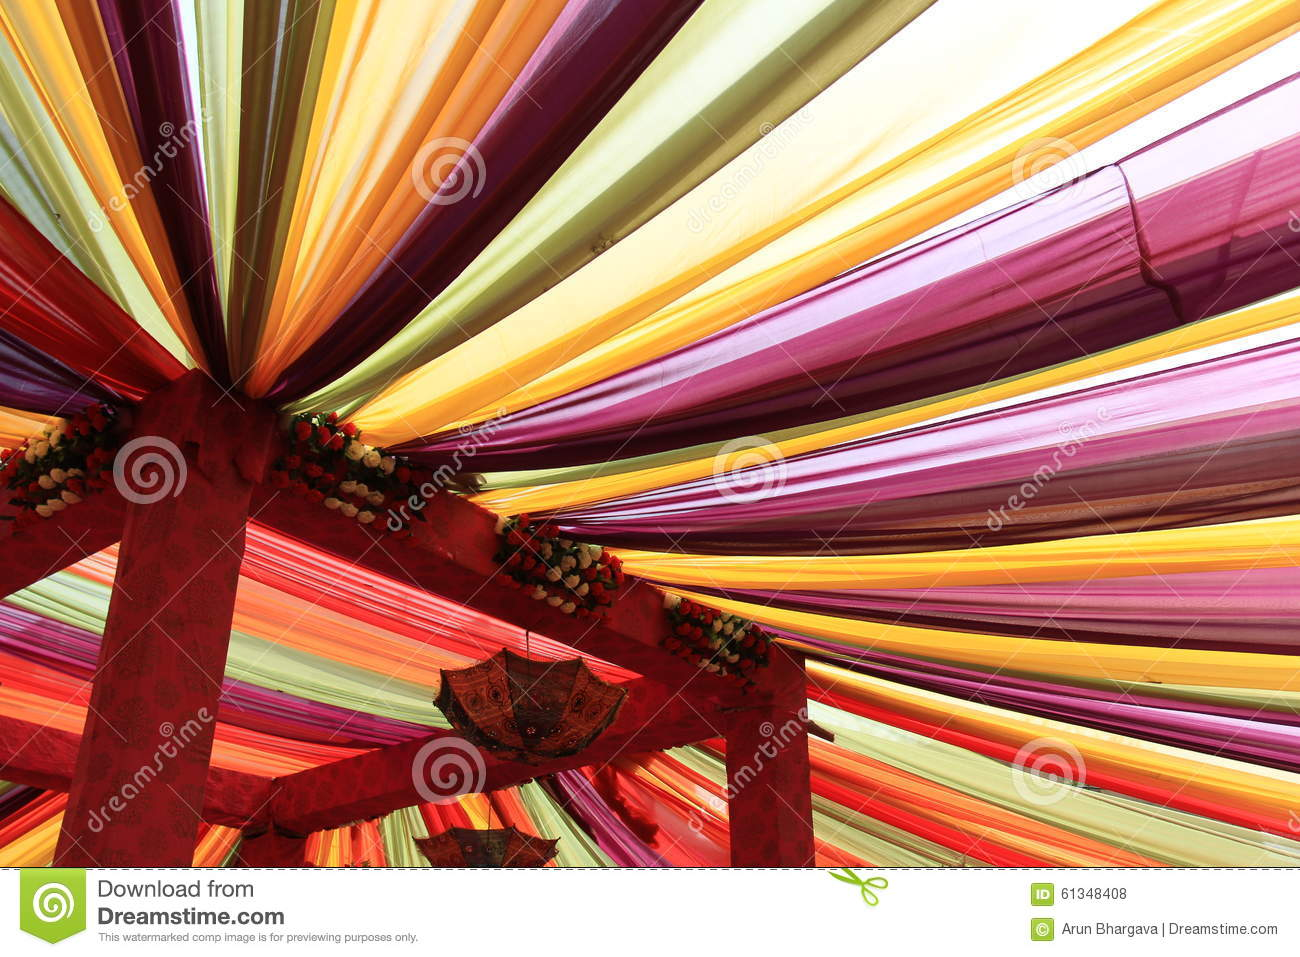 Colorful Ceiling Drapes Stock Photo Image 61348408